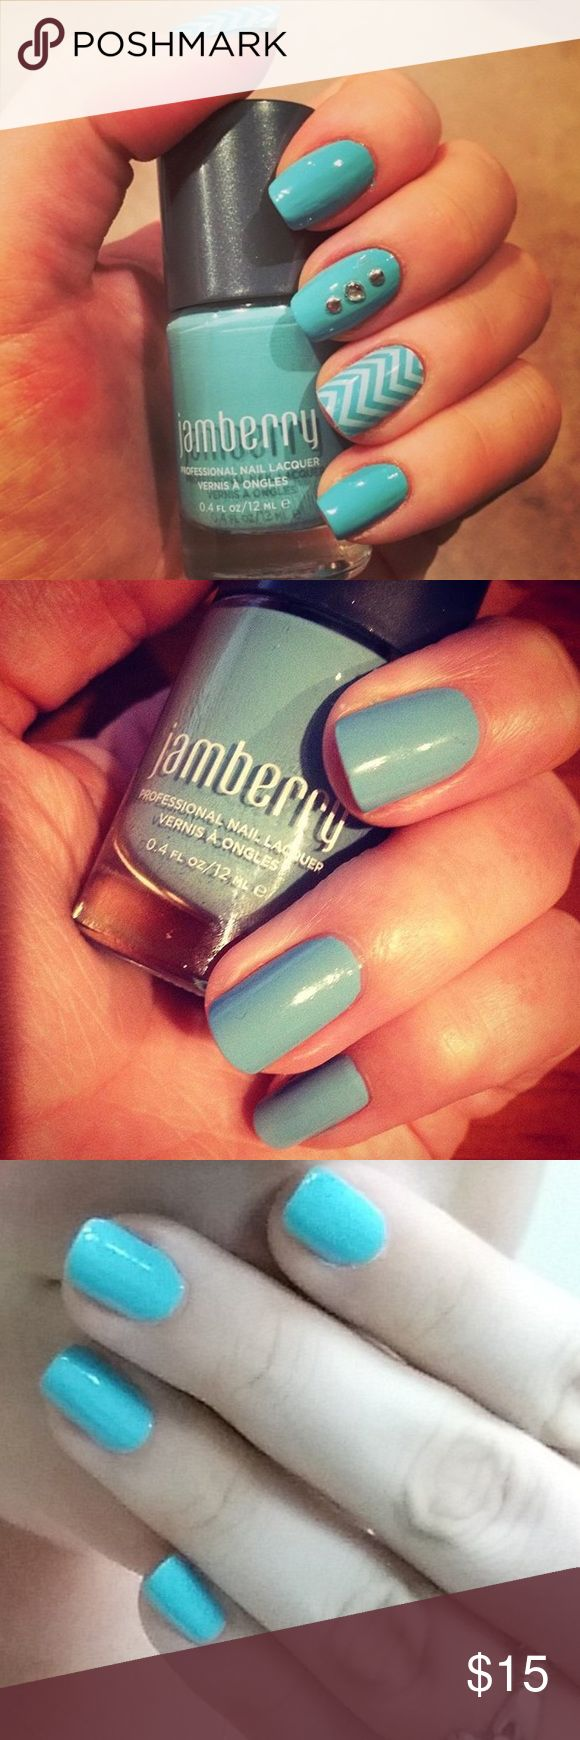 943 best Jamberry Nails images on Pinterest | Jamberry consultant ...